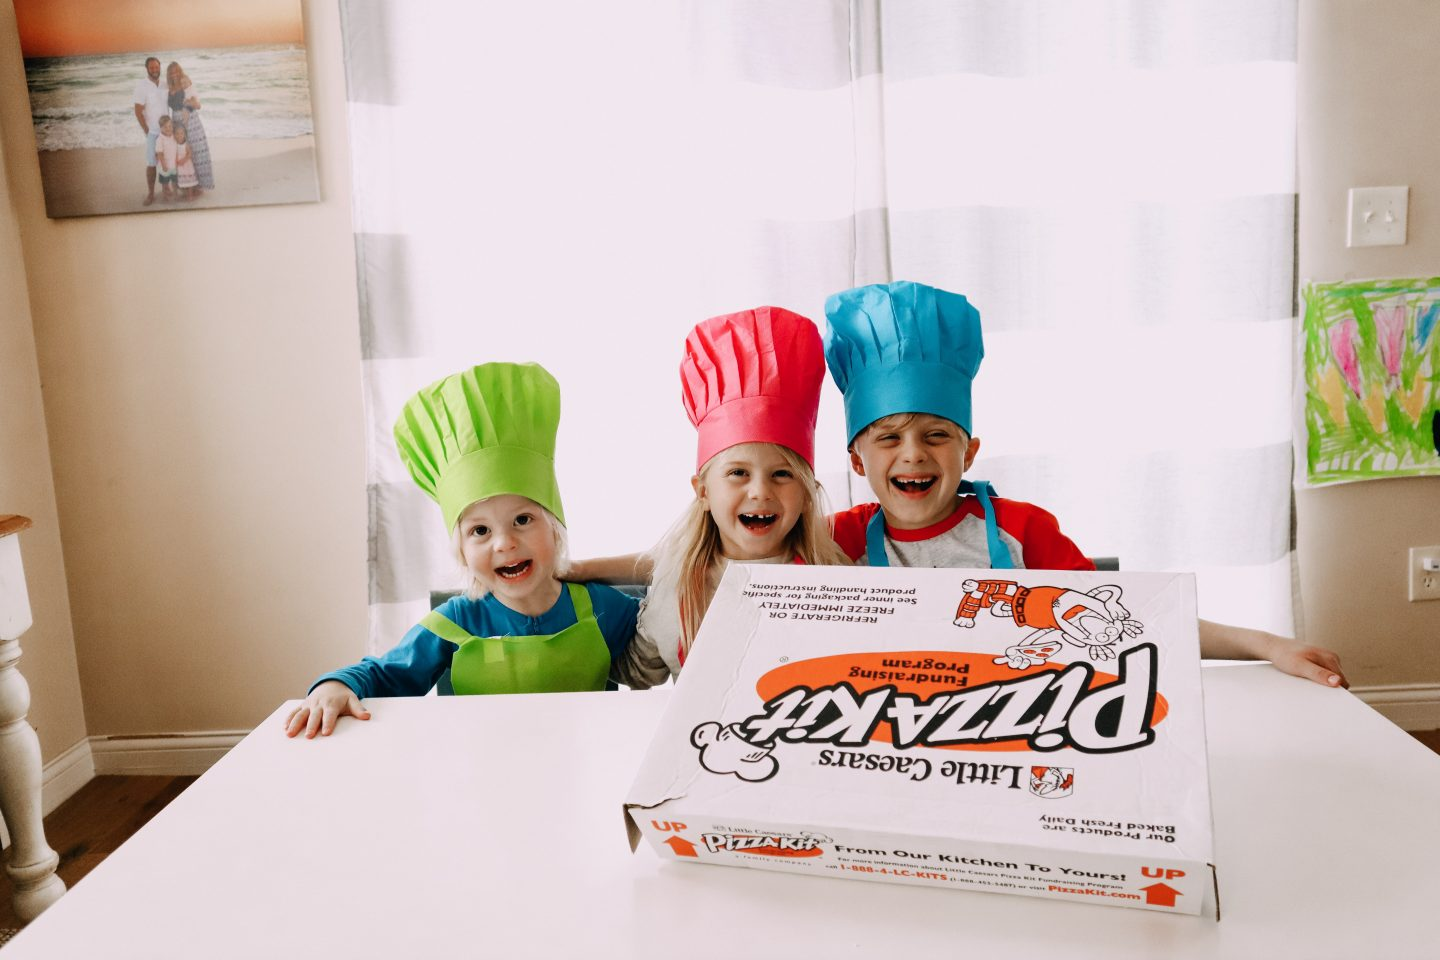 Fundraise for Any Organization with Little Caesars